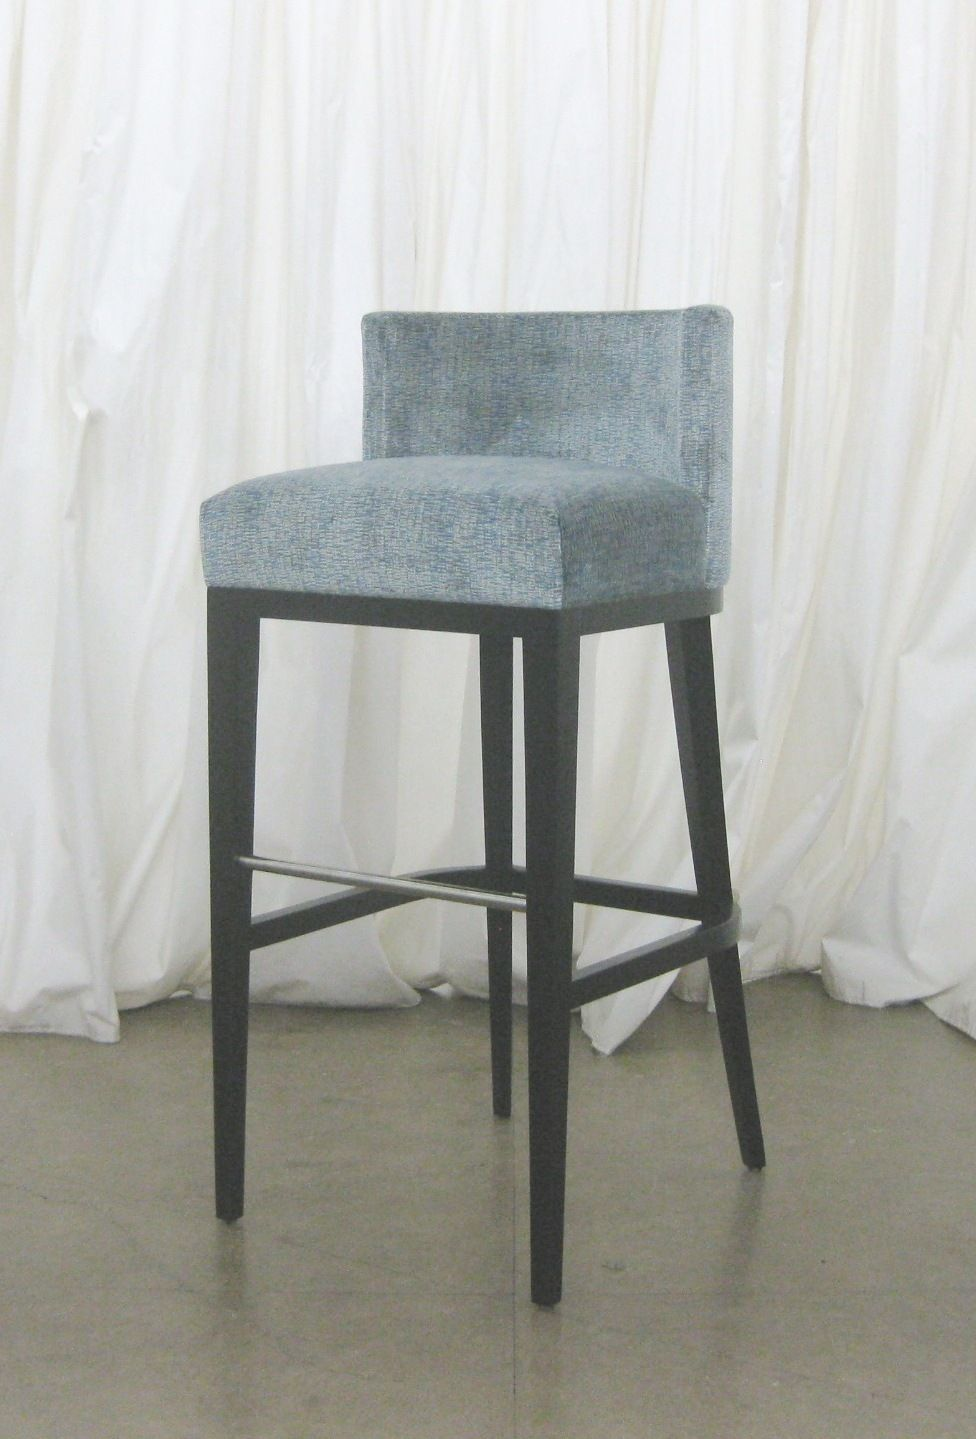 Customized Arabesque Barstool 36 Seat Height And Back And Side Stretchers Added Back Height Reduced By 4 Bar Stools Stool Cool Bar Stools 36 seat height bar stools